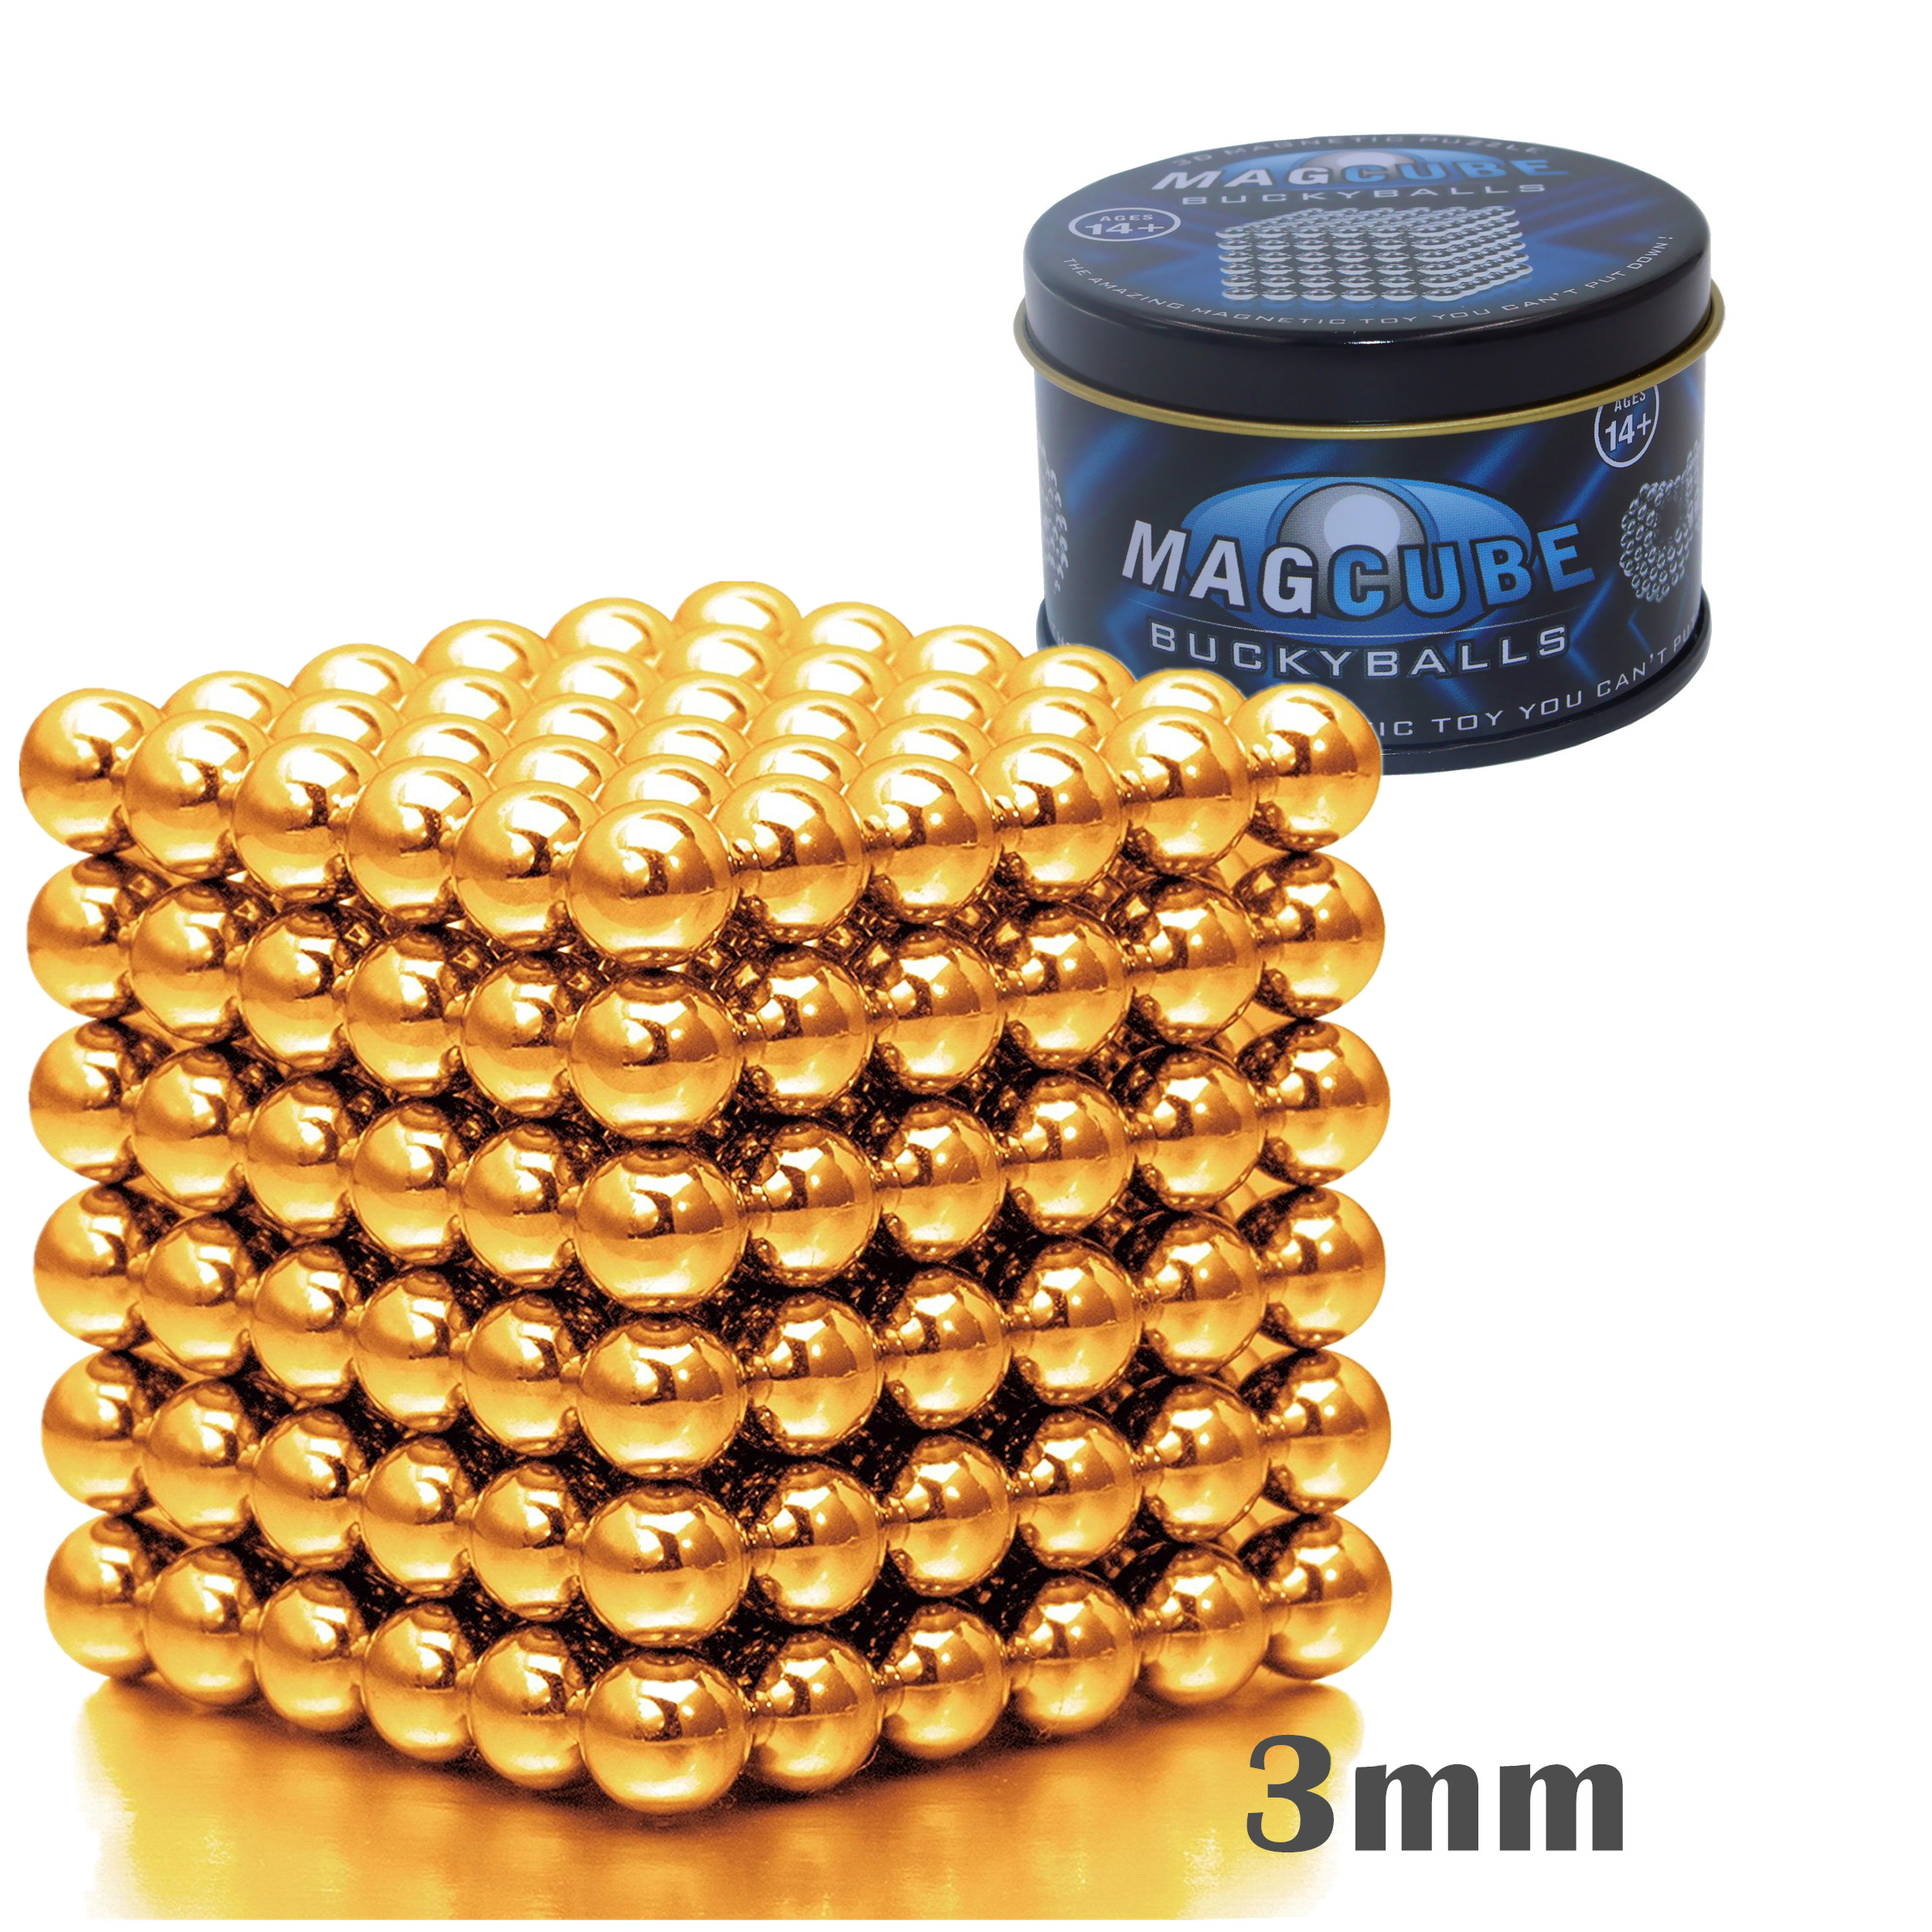 Golden Color Set of 216 pcs (3 mm) Magnetic Balls Beads, Round Buildable Rollable Magnets, Stress Relief Desk Office Toys, Multi-Use Craft & Refrigerator Magnets, Educational Building Blocks